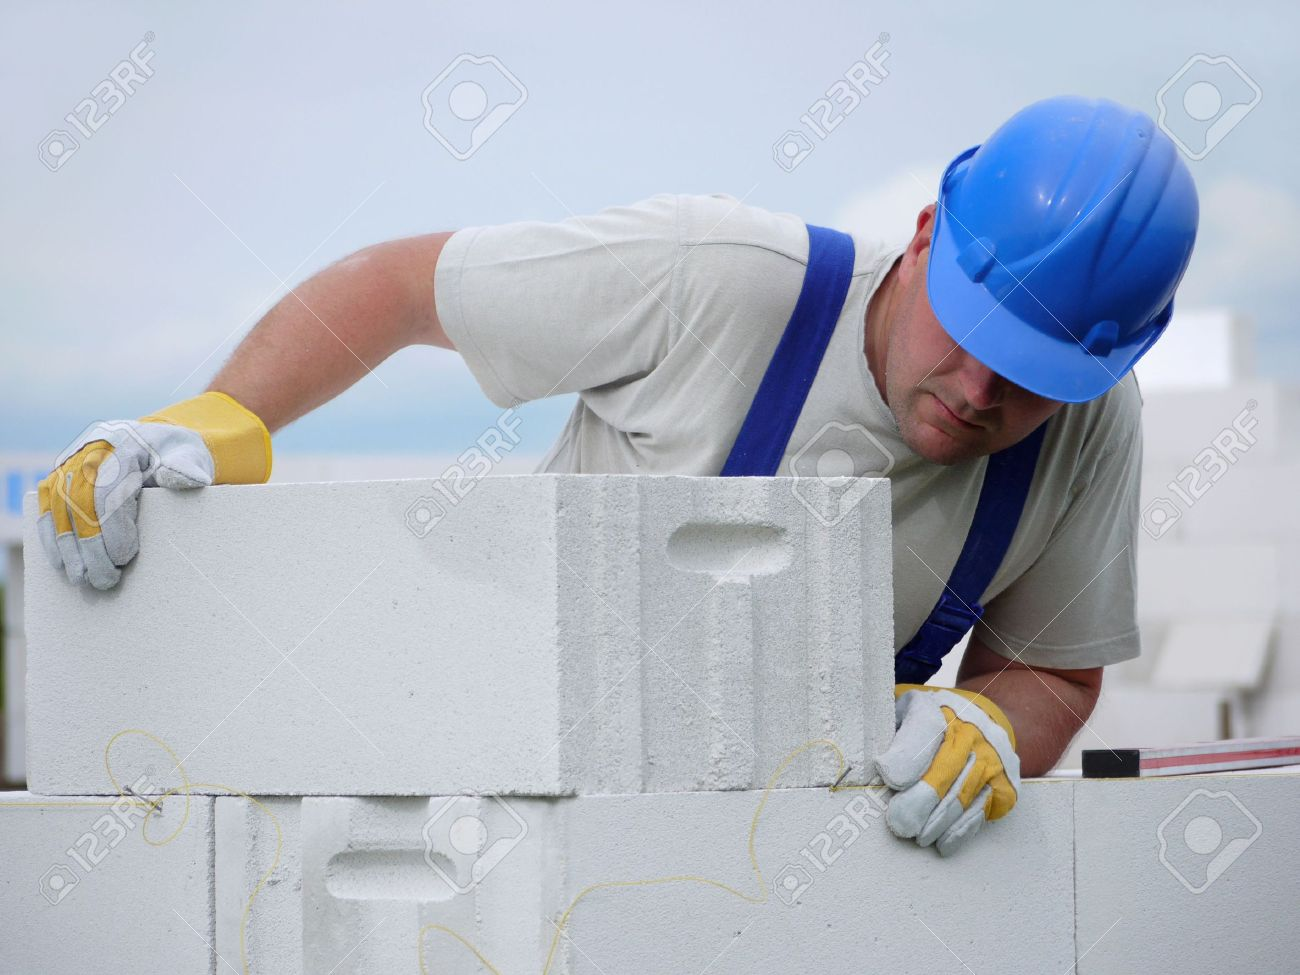 Mason aligning aerated autoclaved concrete block of constructed house wall Stock Photo - 4988352